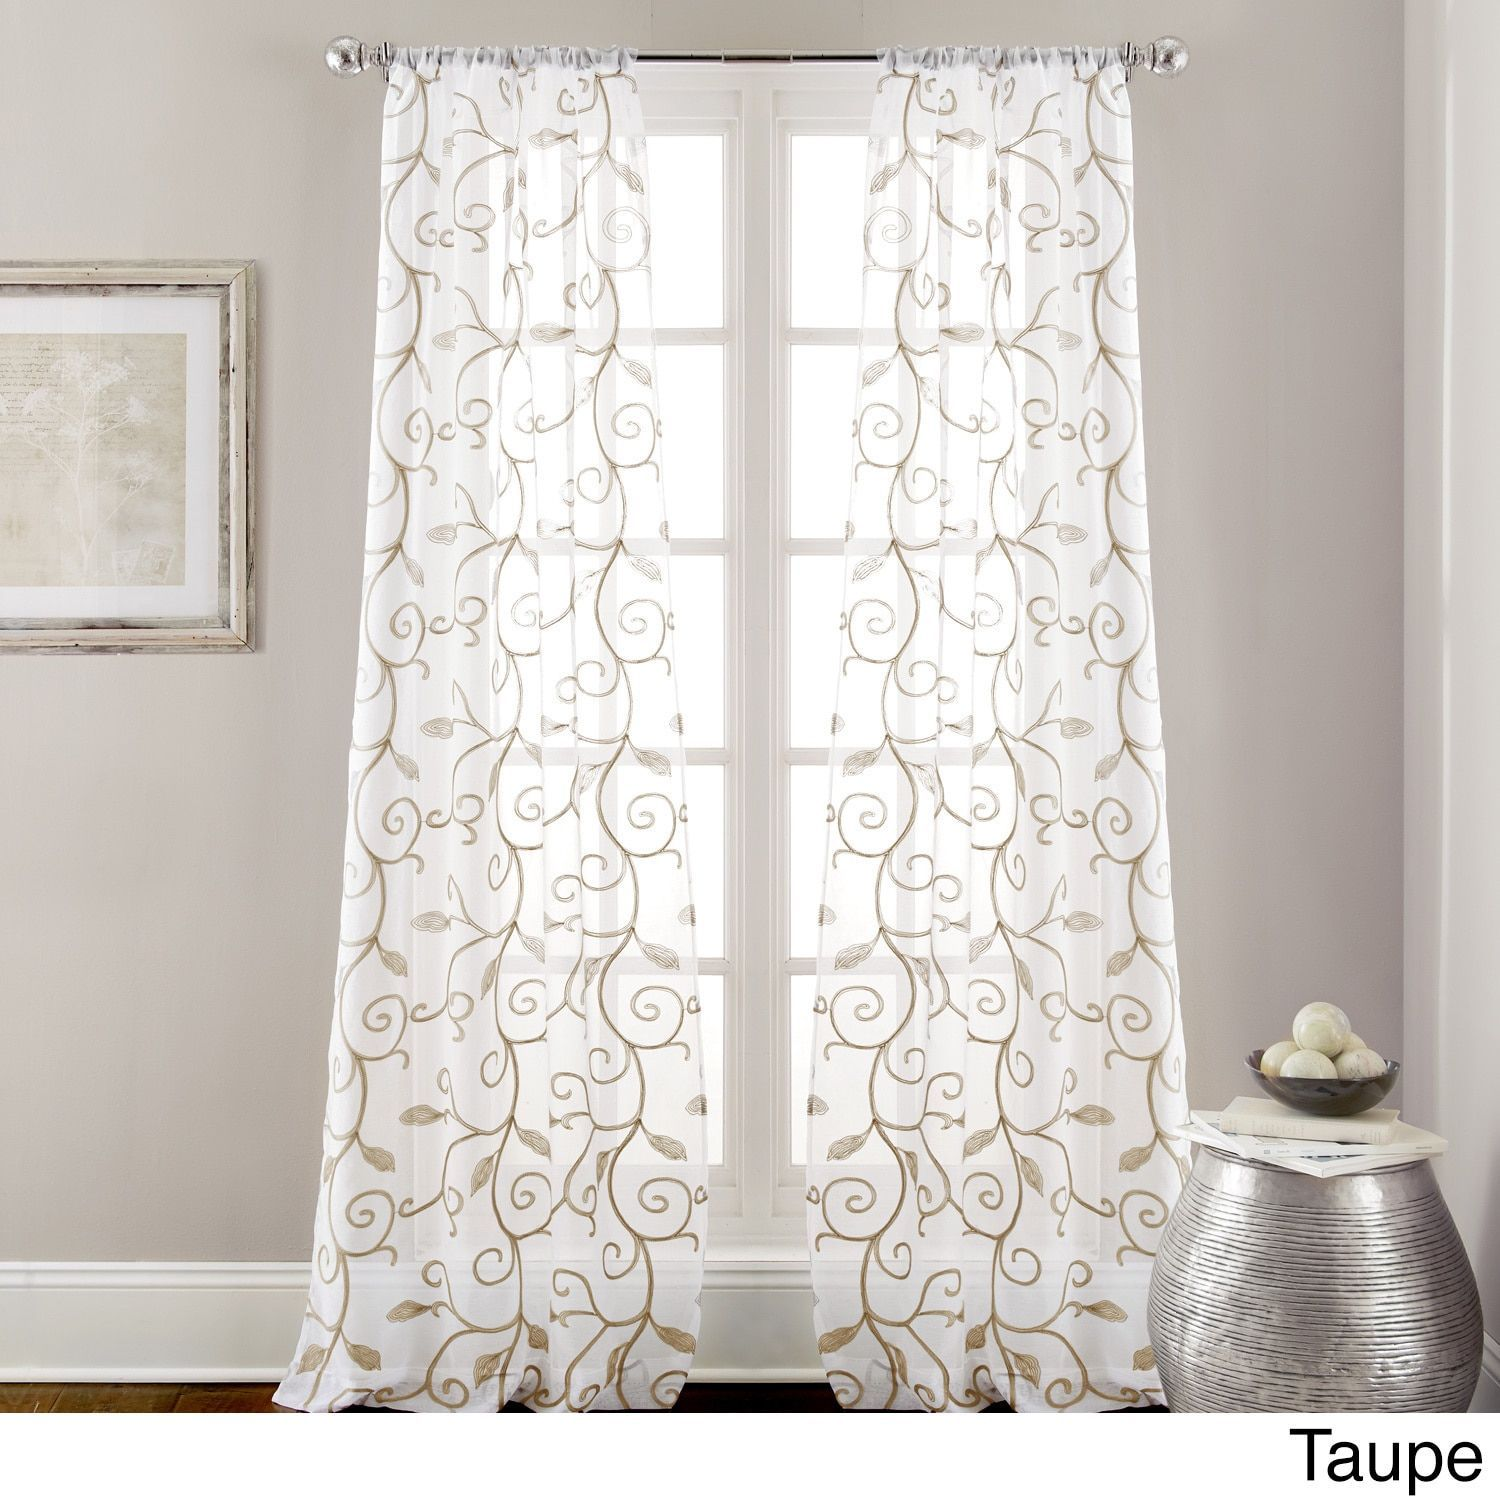 Leaf Swirl Embroidered Curtain Panel Pair White Size 37 X 84 Polyester Floral Leaves